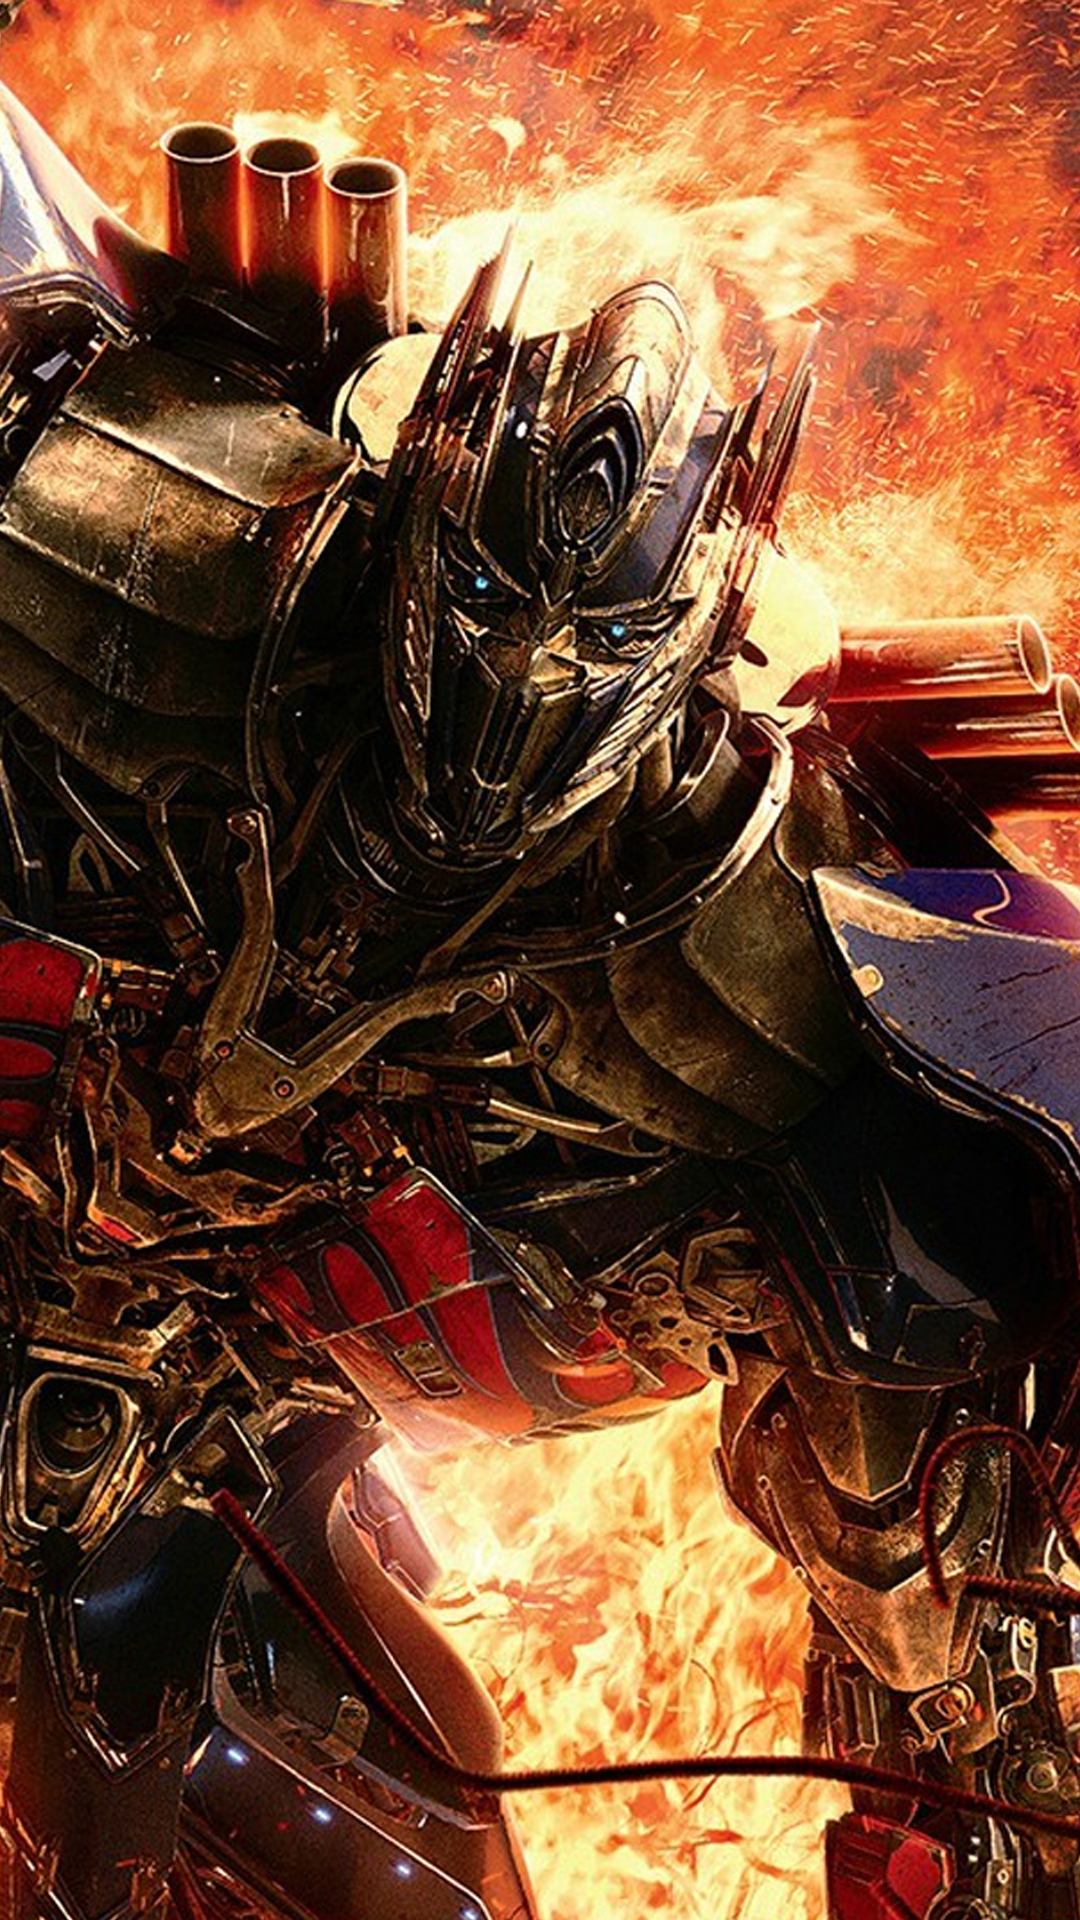 Transformers Wallpapers For Android Posted By Zoey Sellers